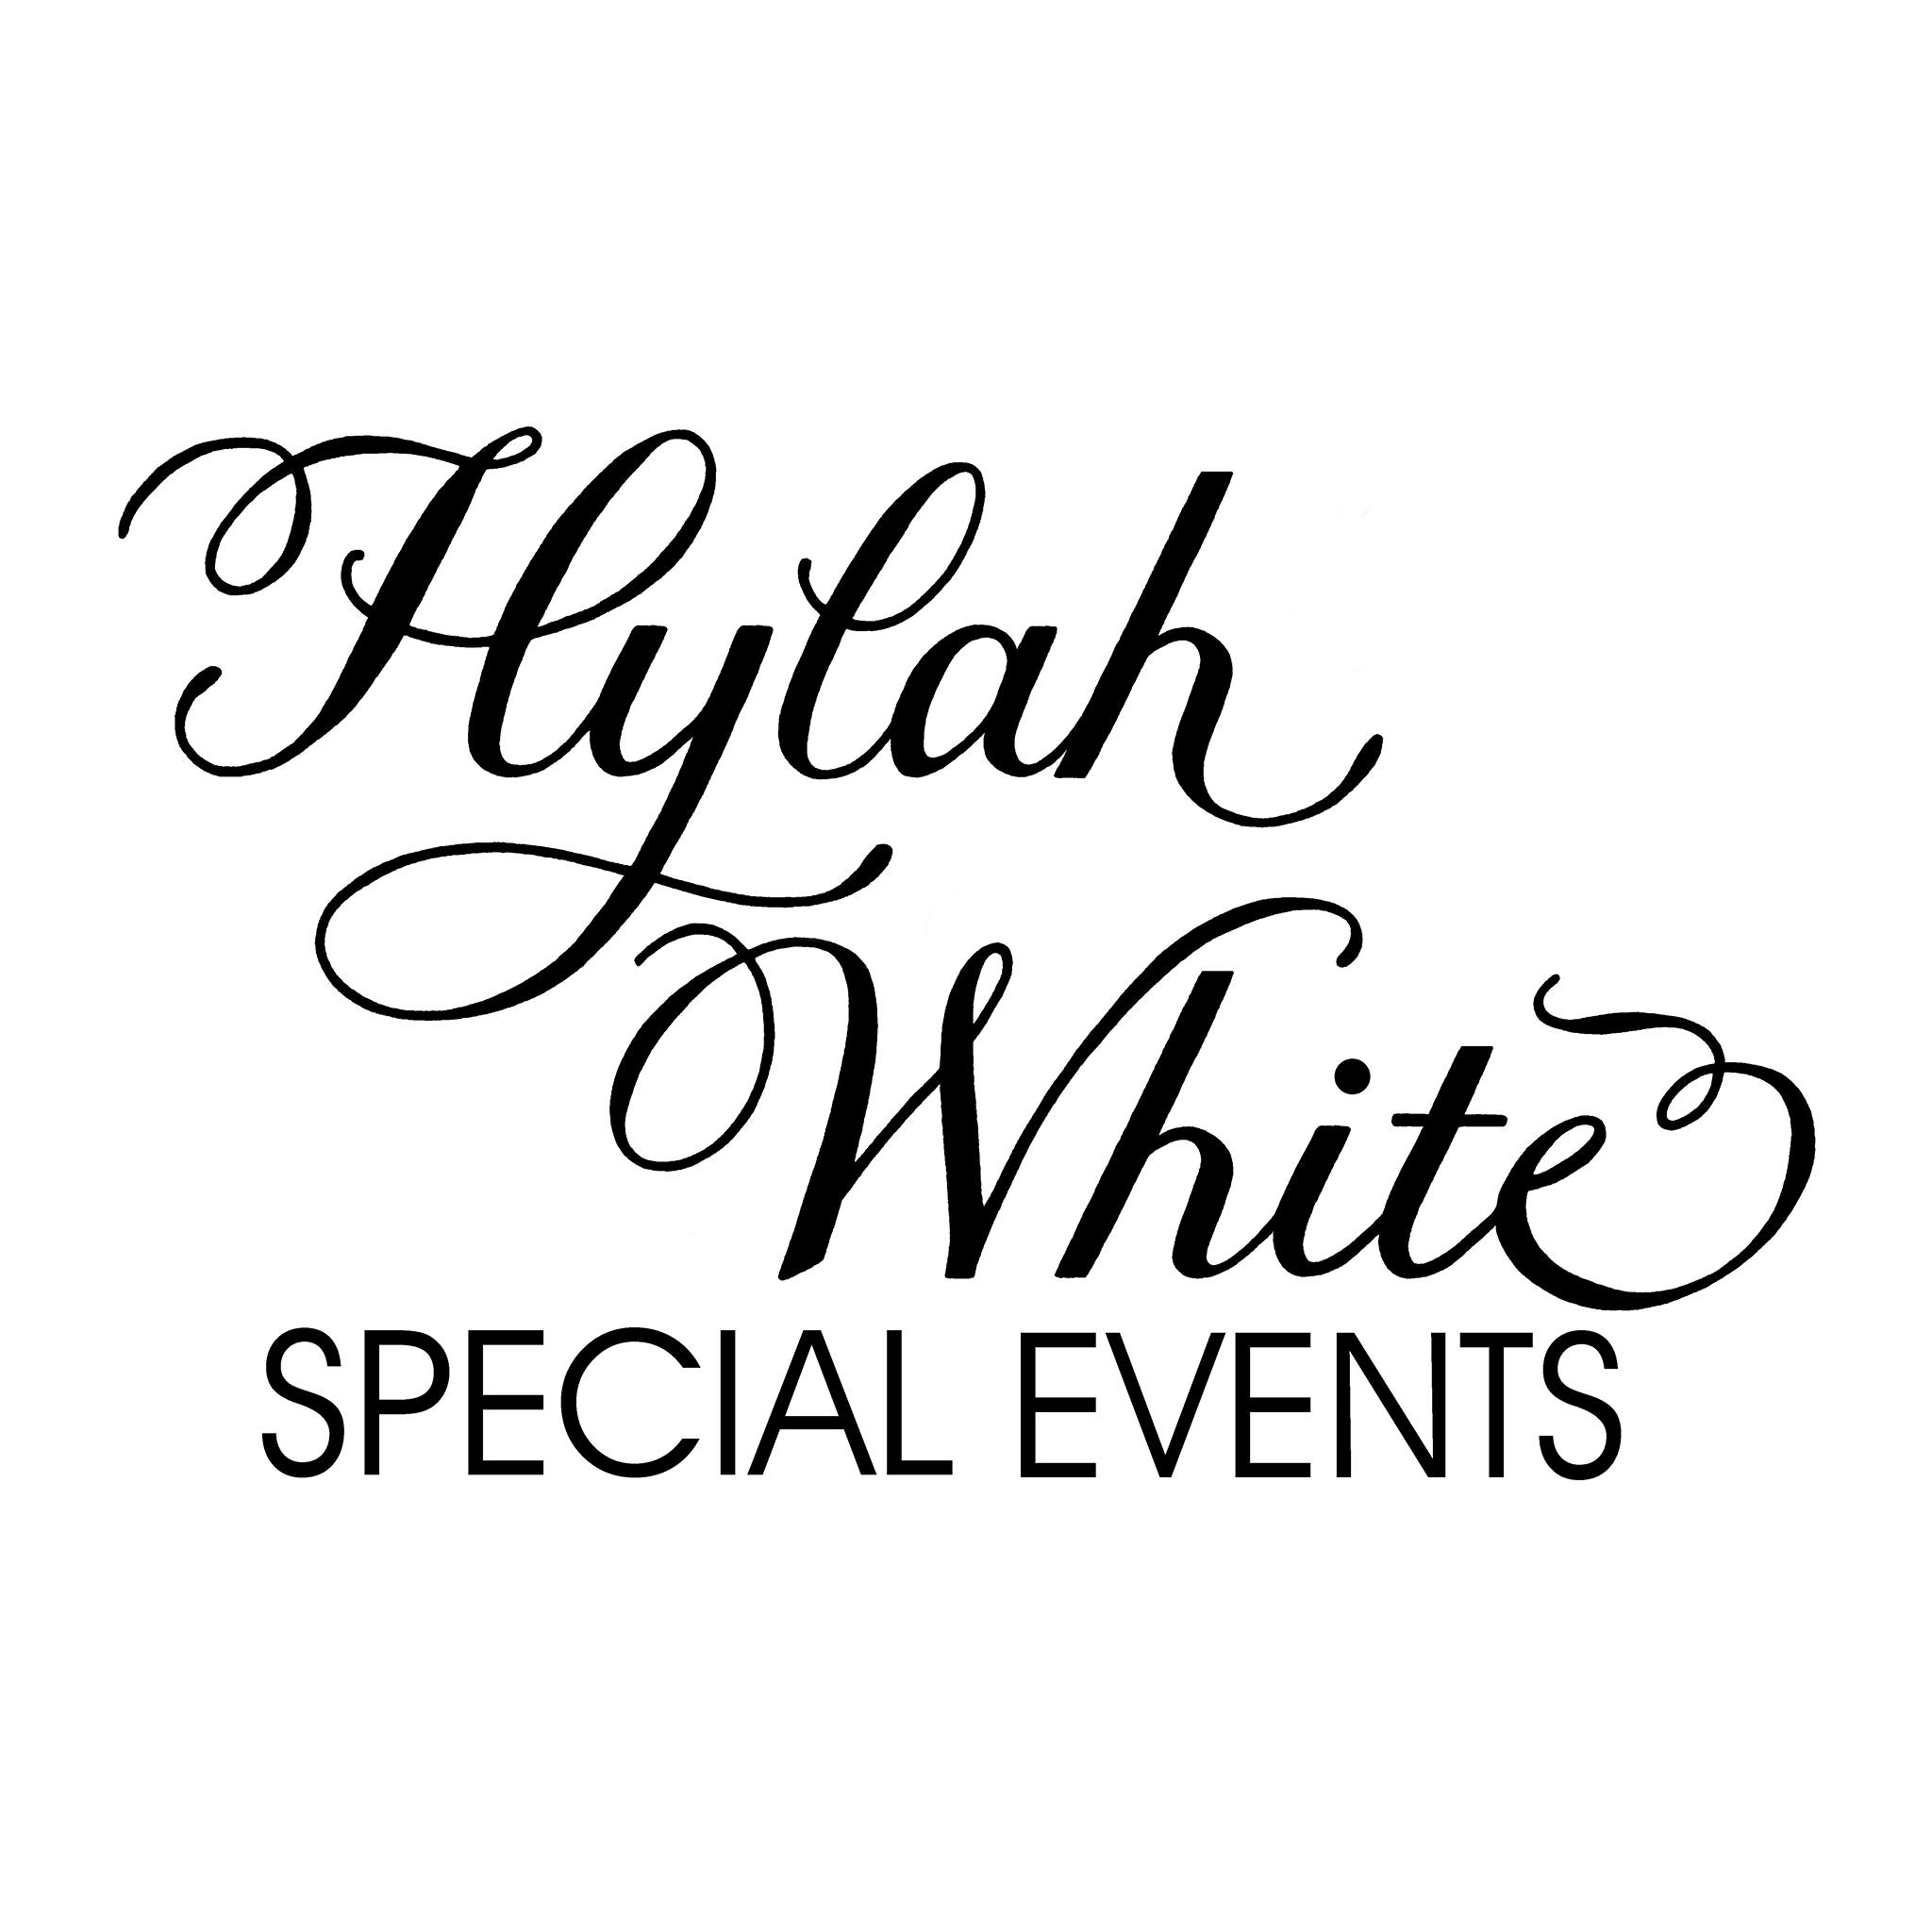 Hylah White Special Events - Hylah White Special Events